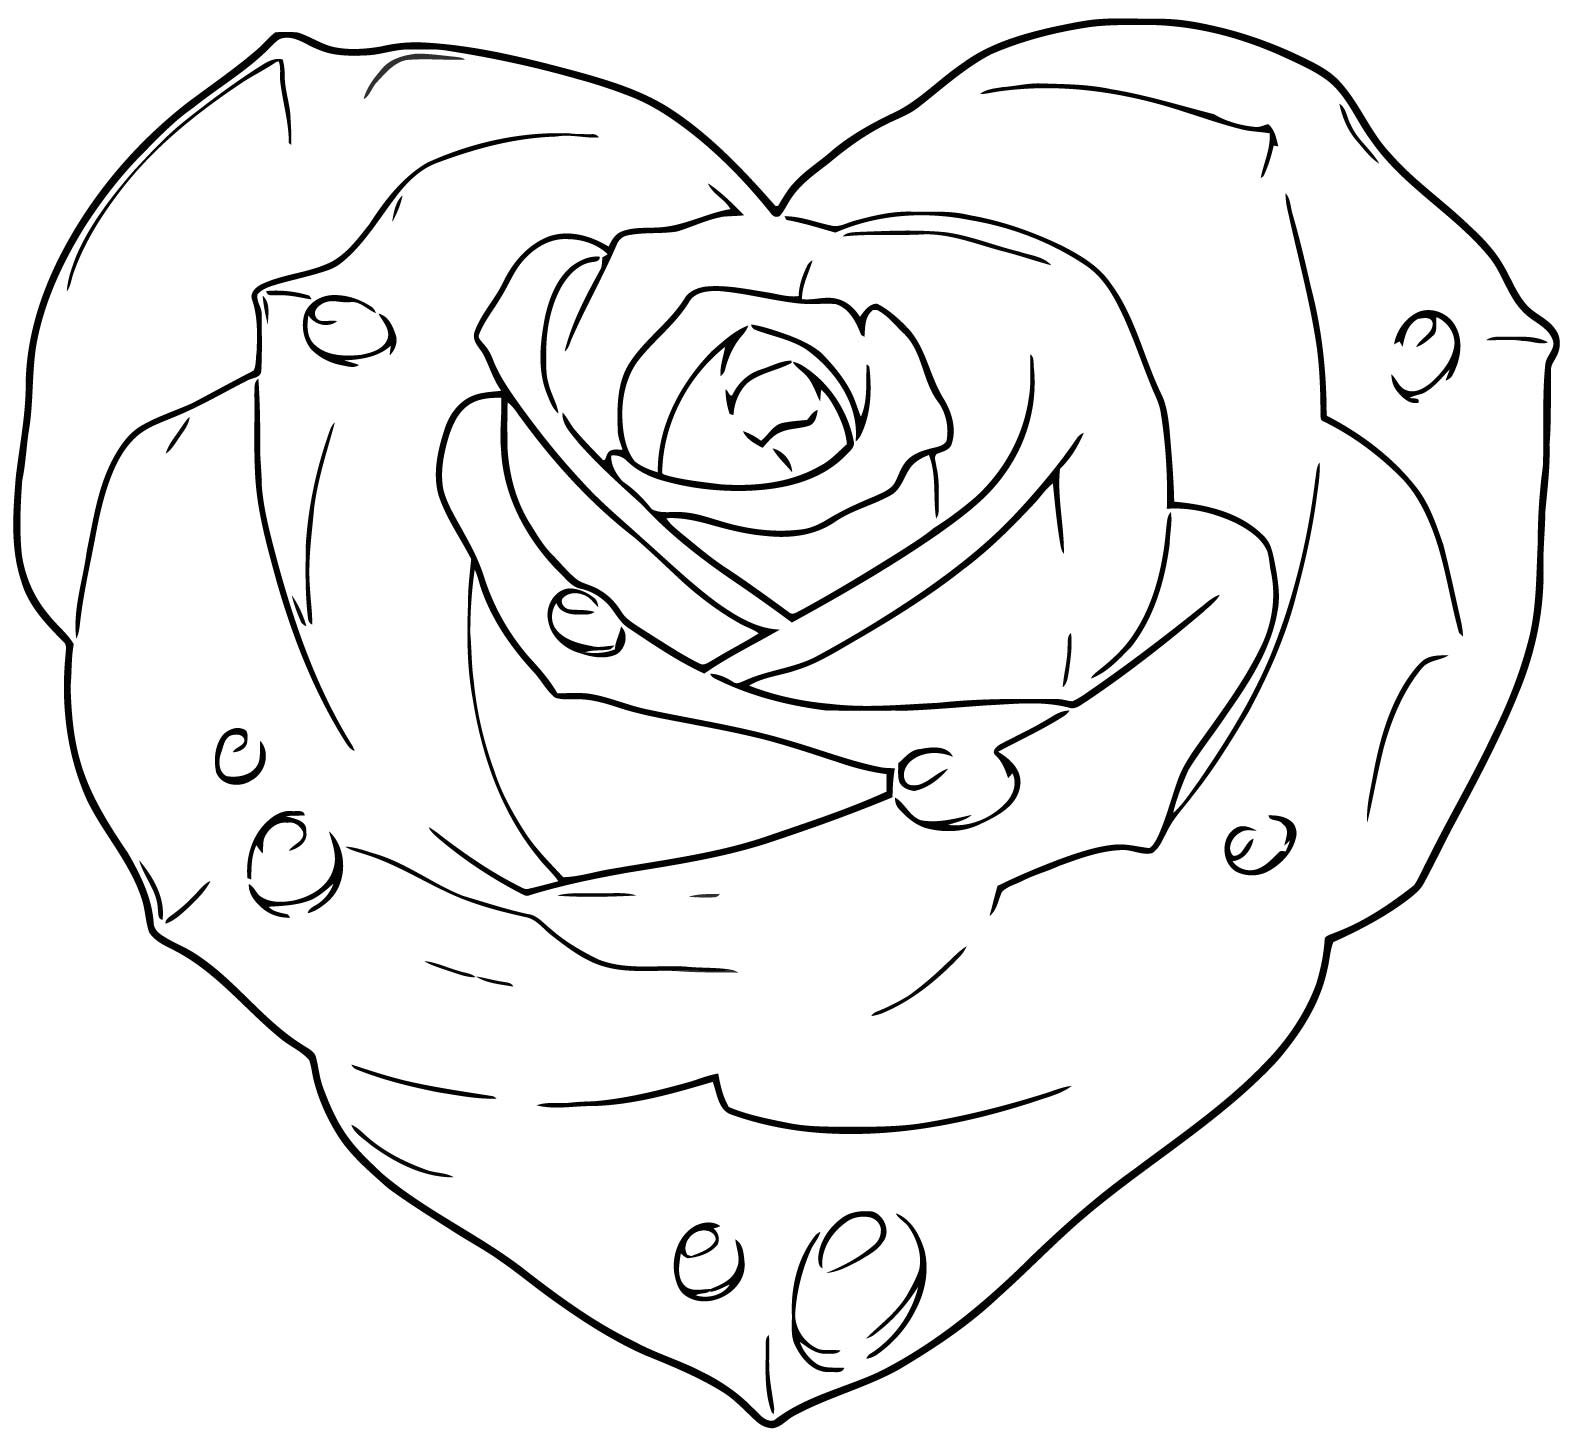 Rose Heart 1 Coloring Page